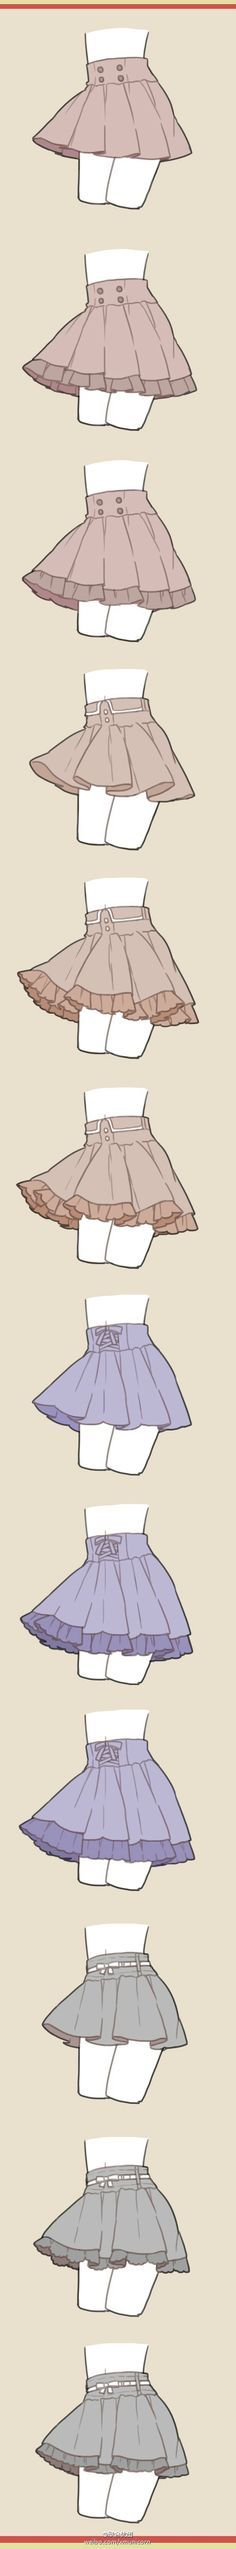 How to draw skirts - clothing drawing reference